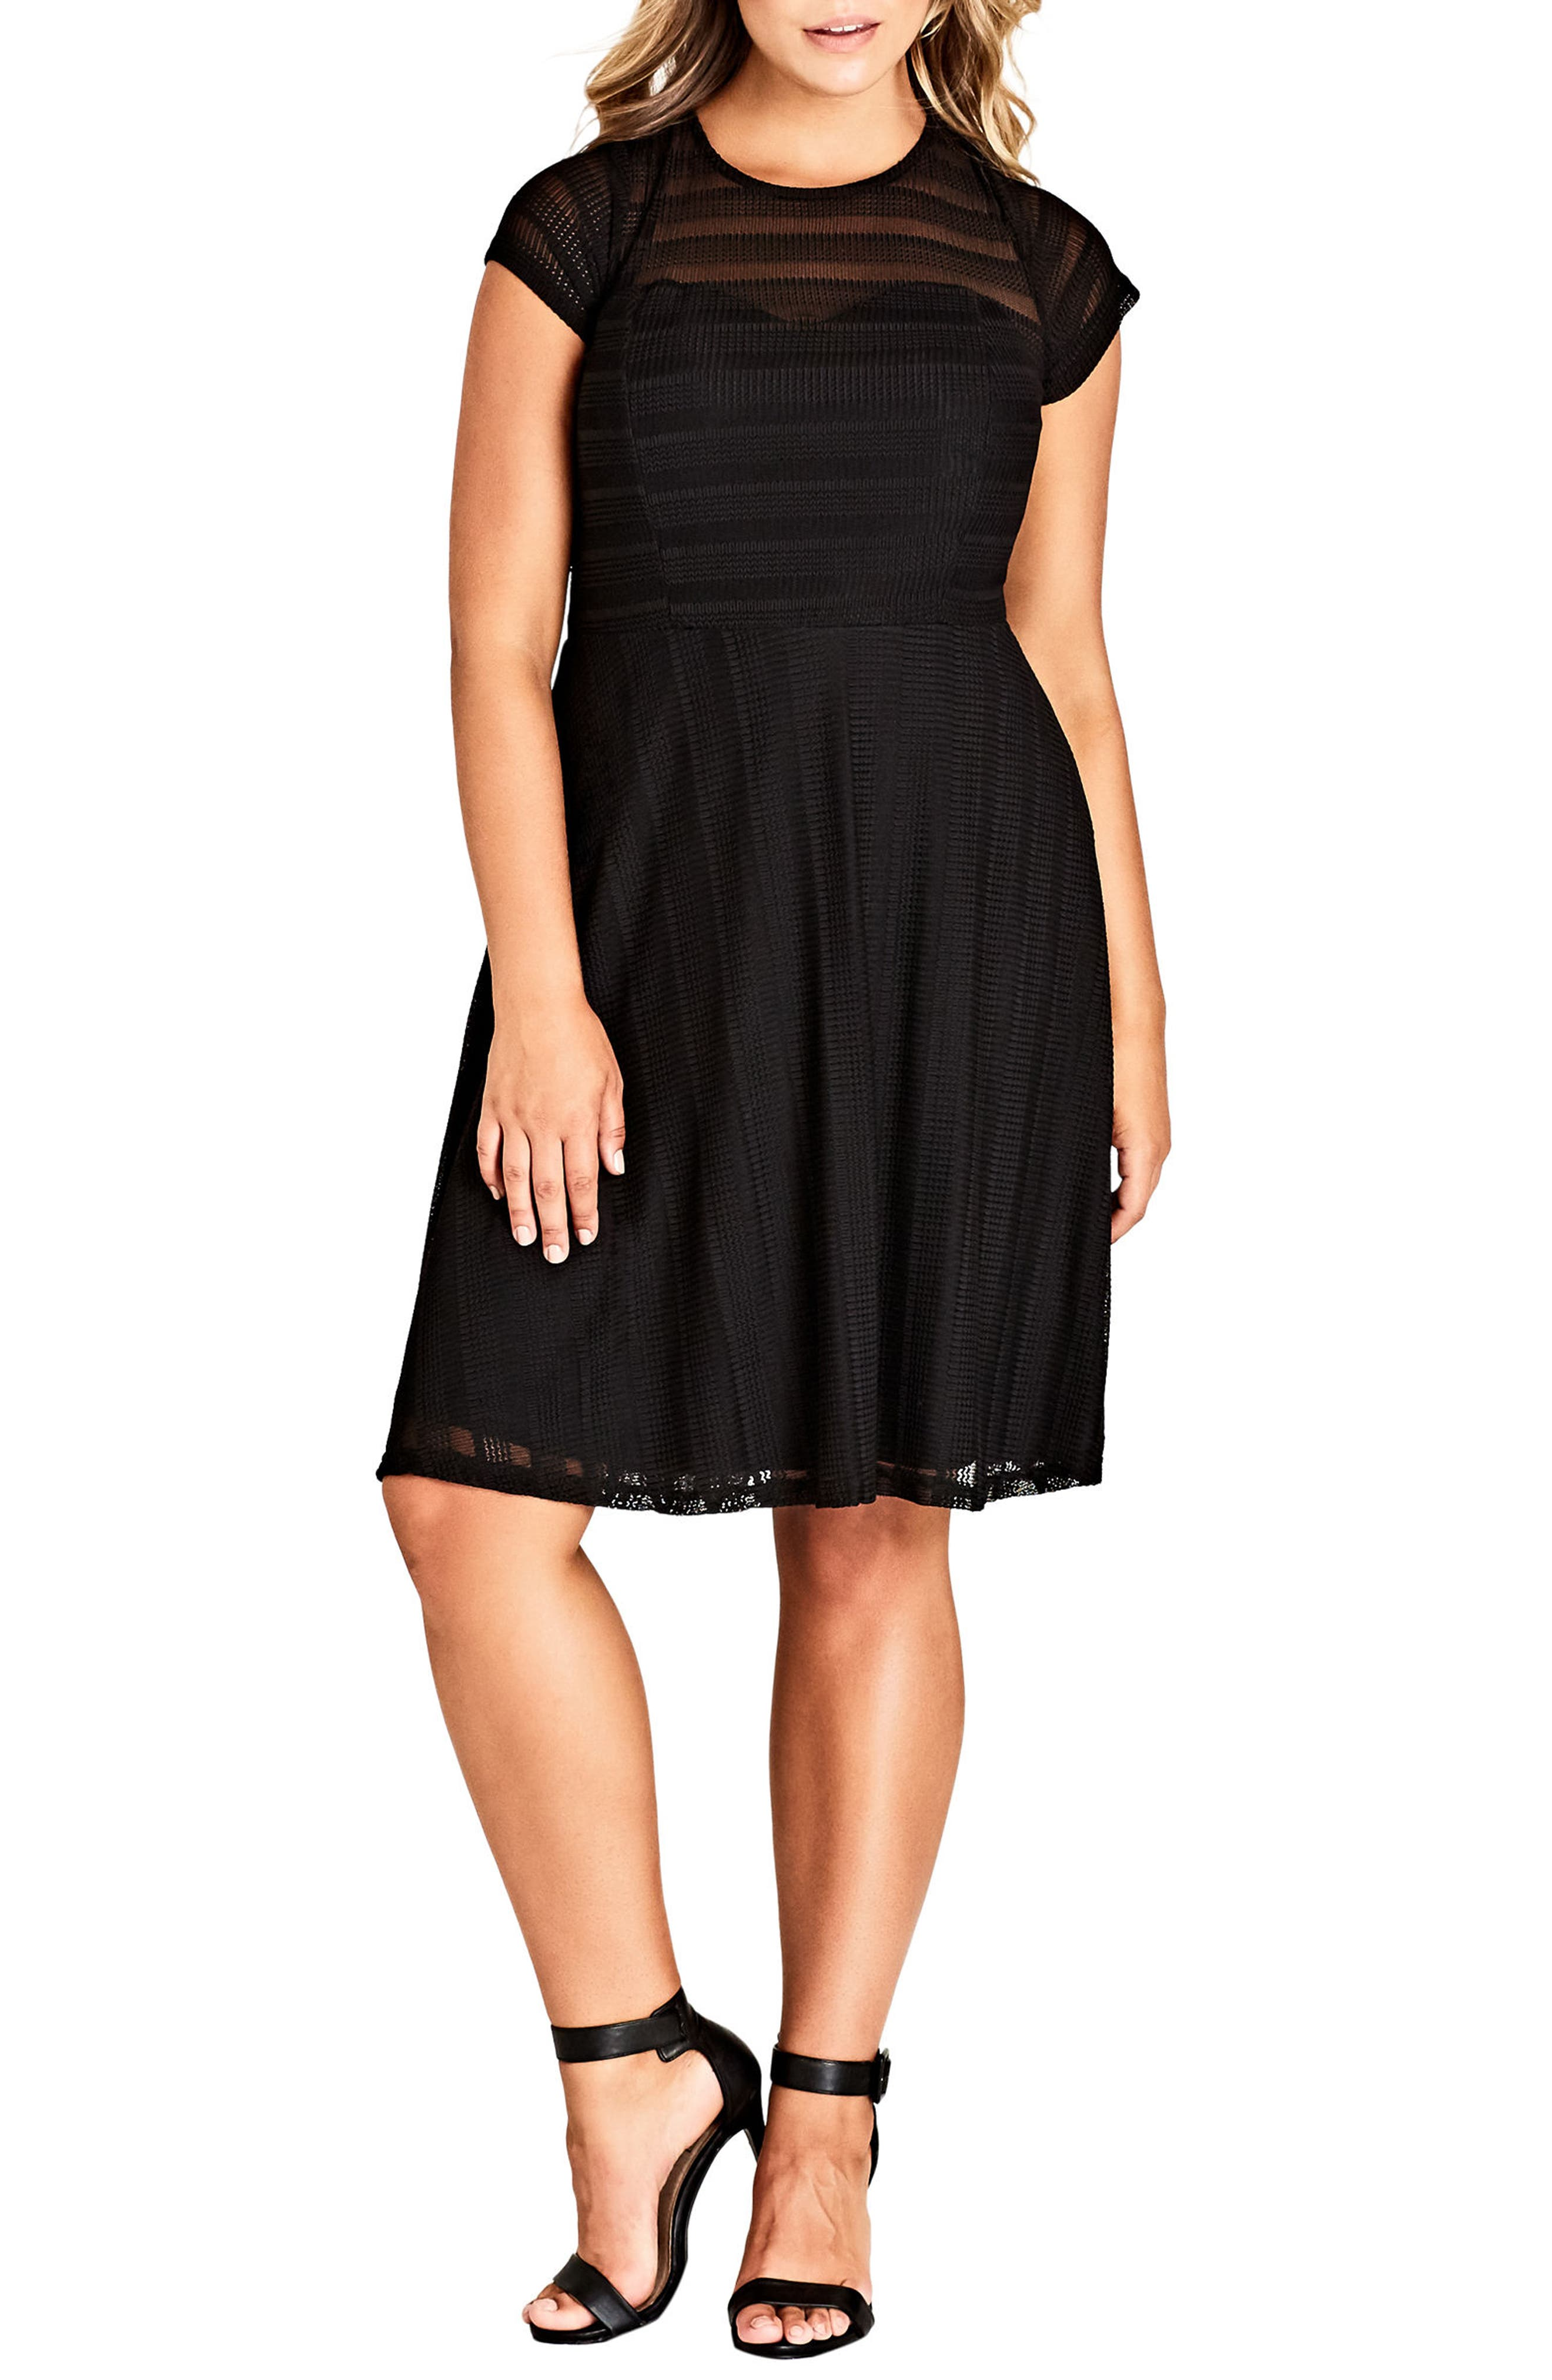 b20cd7455090 Cocktail & Party Plus-Size Dresses | Nordstrom